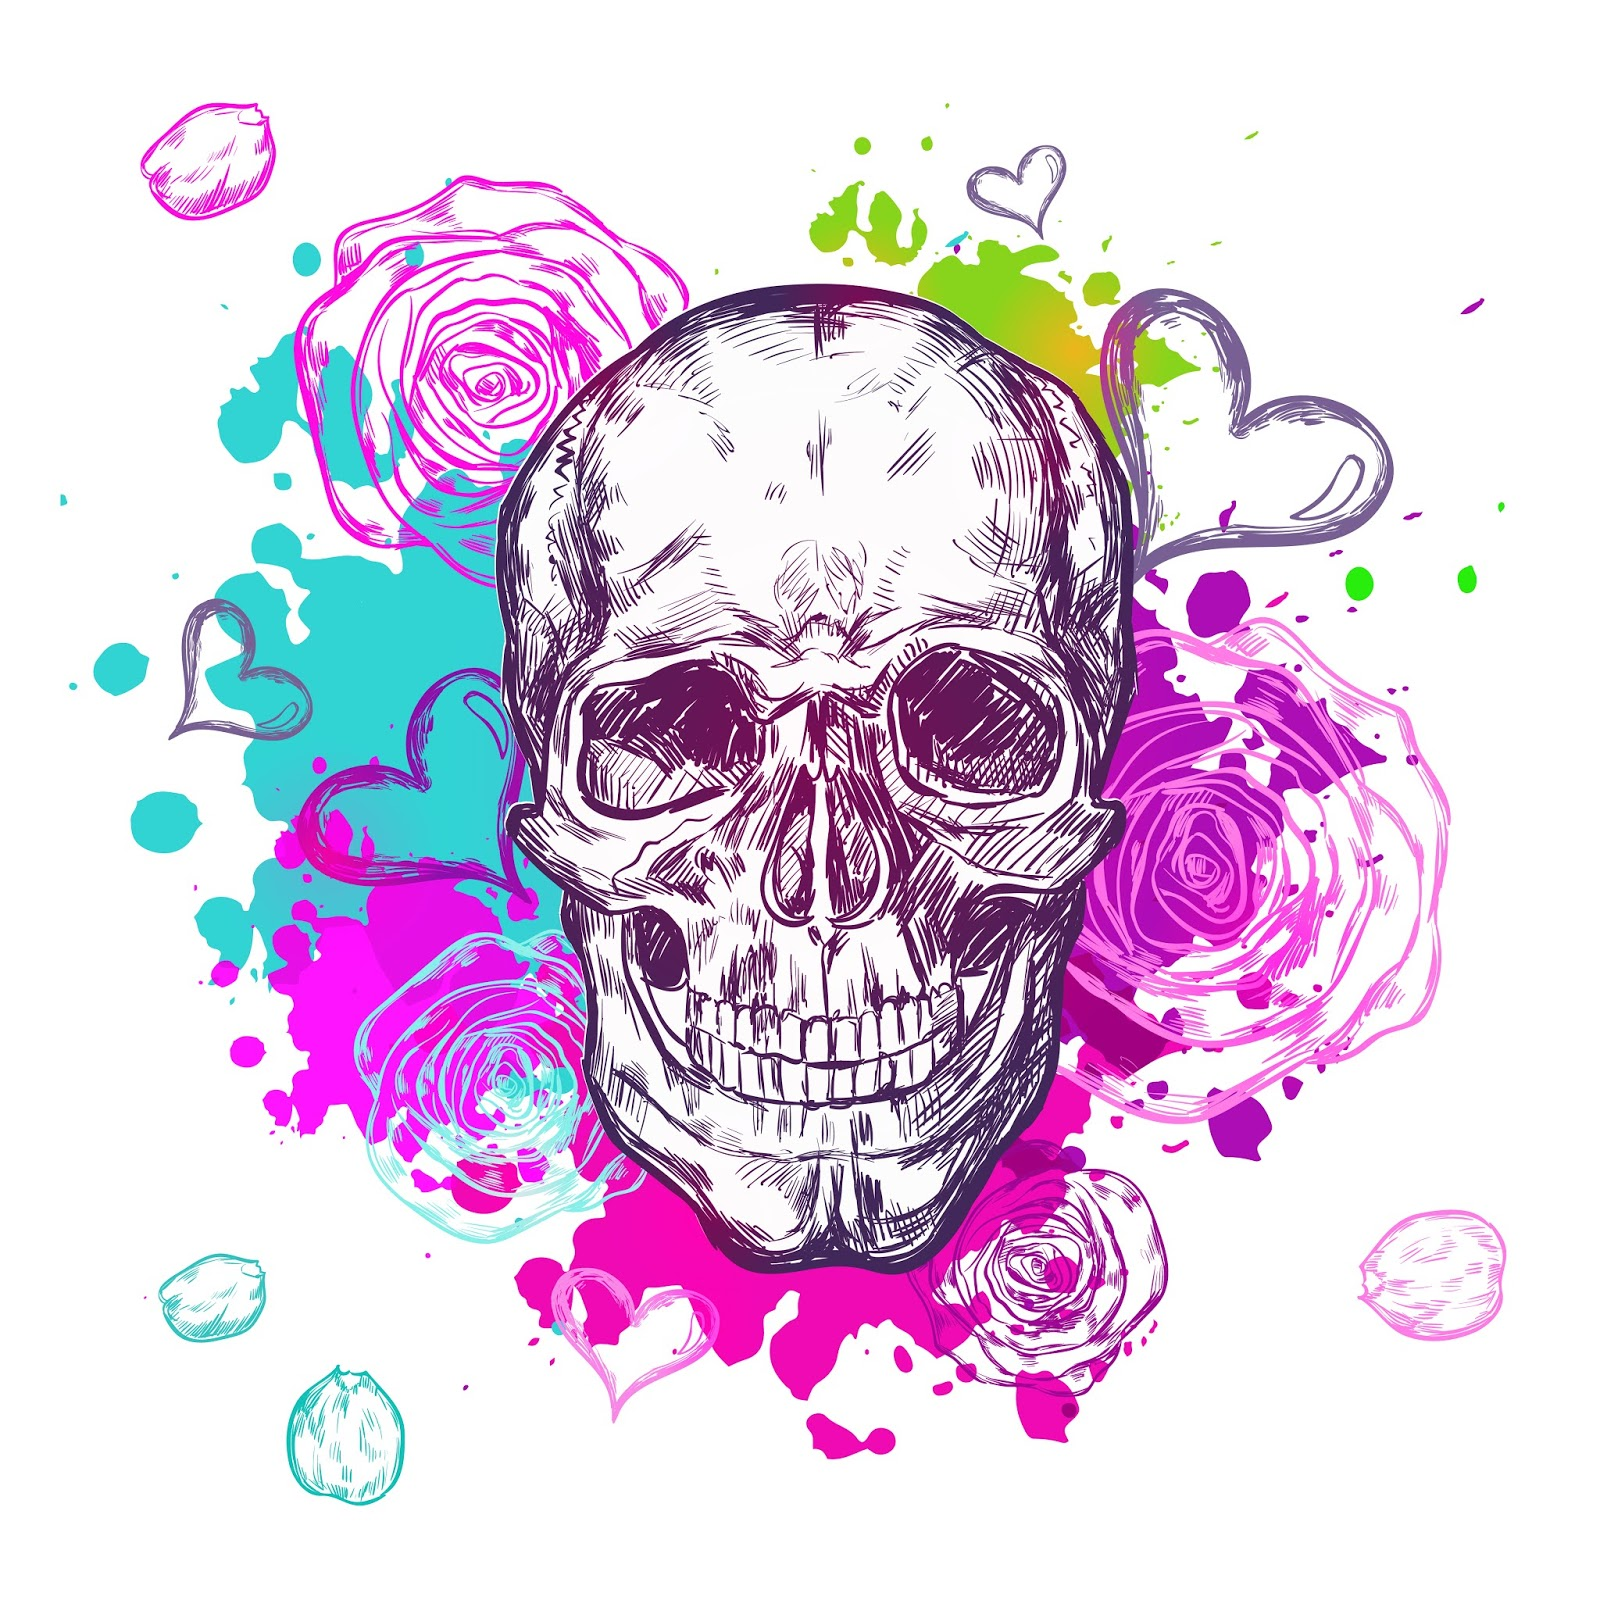 Skull Cow Boho Composition Free Download Vector CDR, AI, EPS and PNG Formats